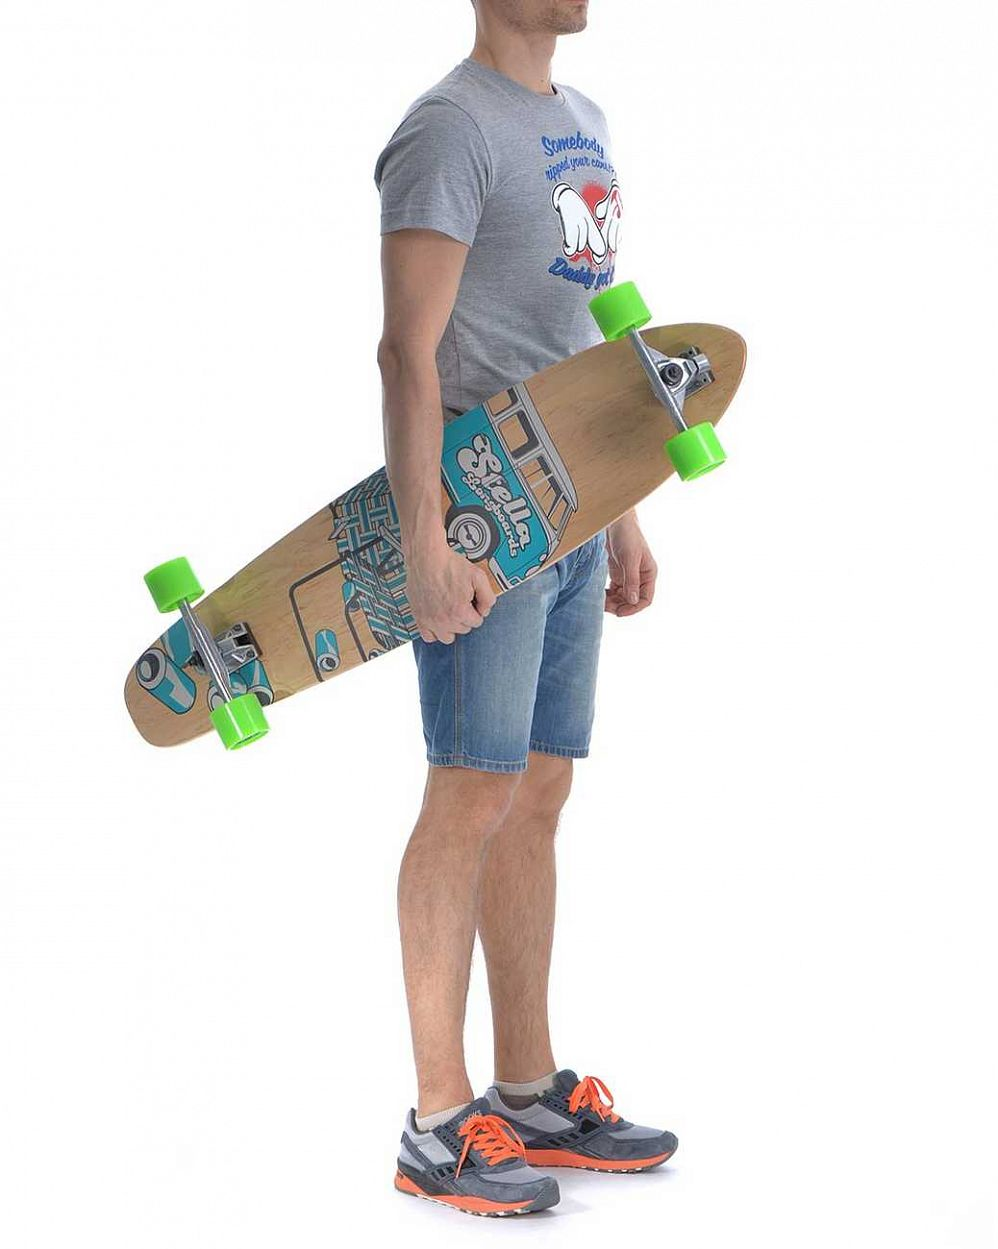 Лонгборд Stella Longboards KICKTAIL SLOW DAYZ BLUE в розницу